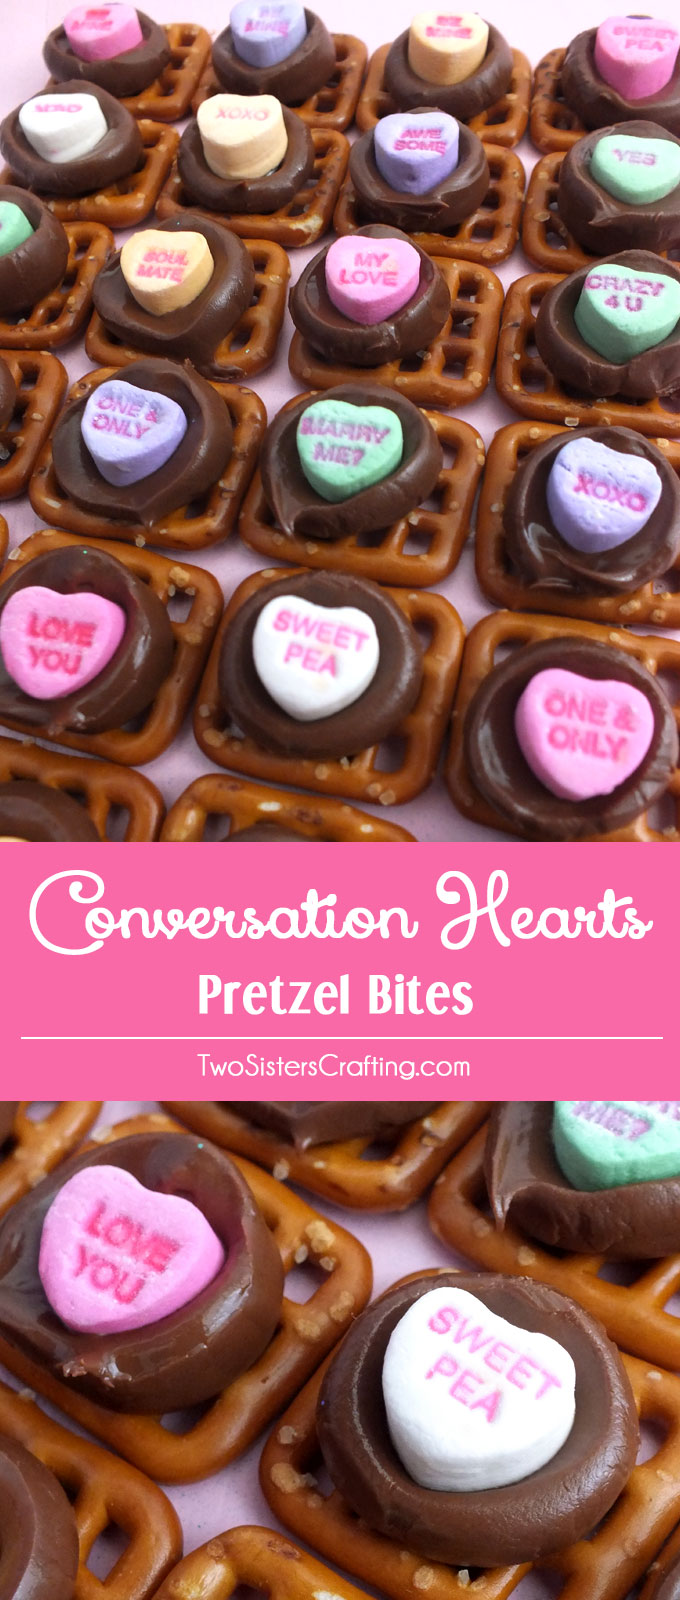 Conversation Hearts Pretzel Bites Two Sisters